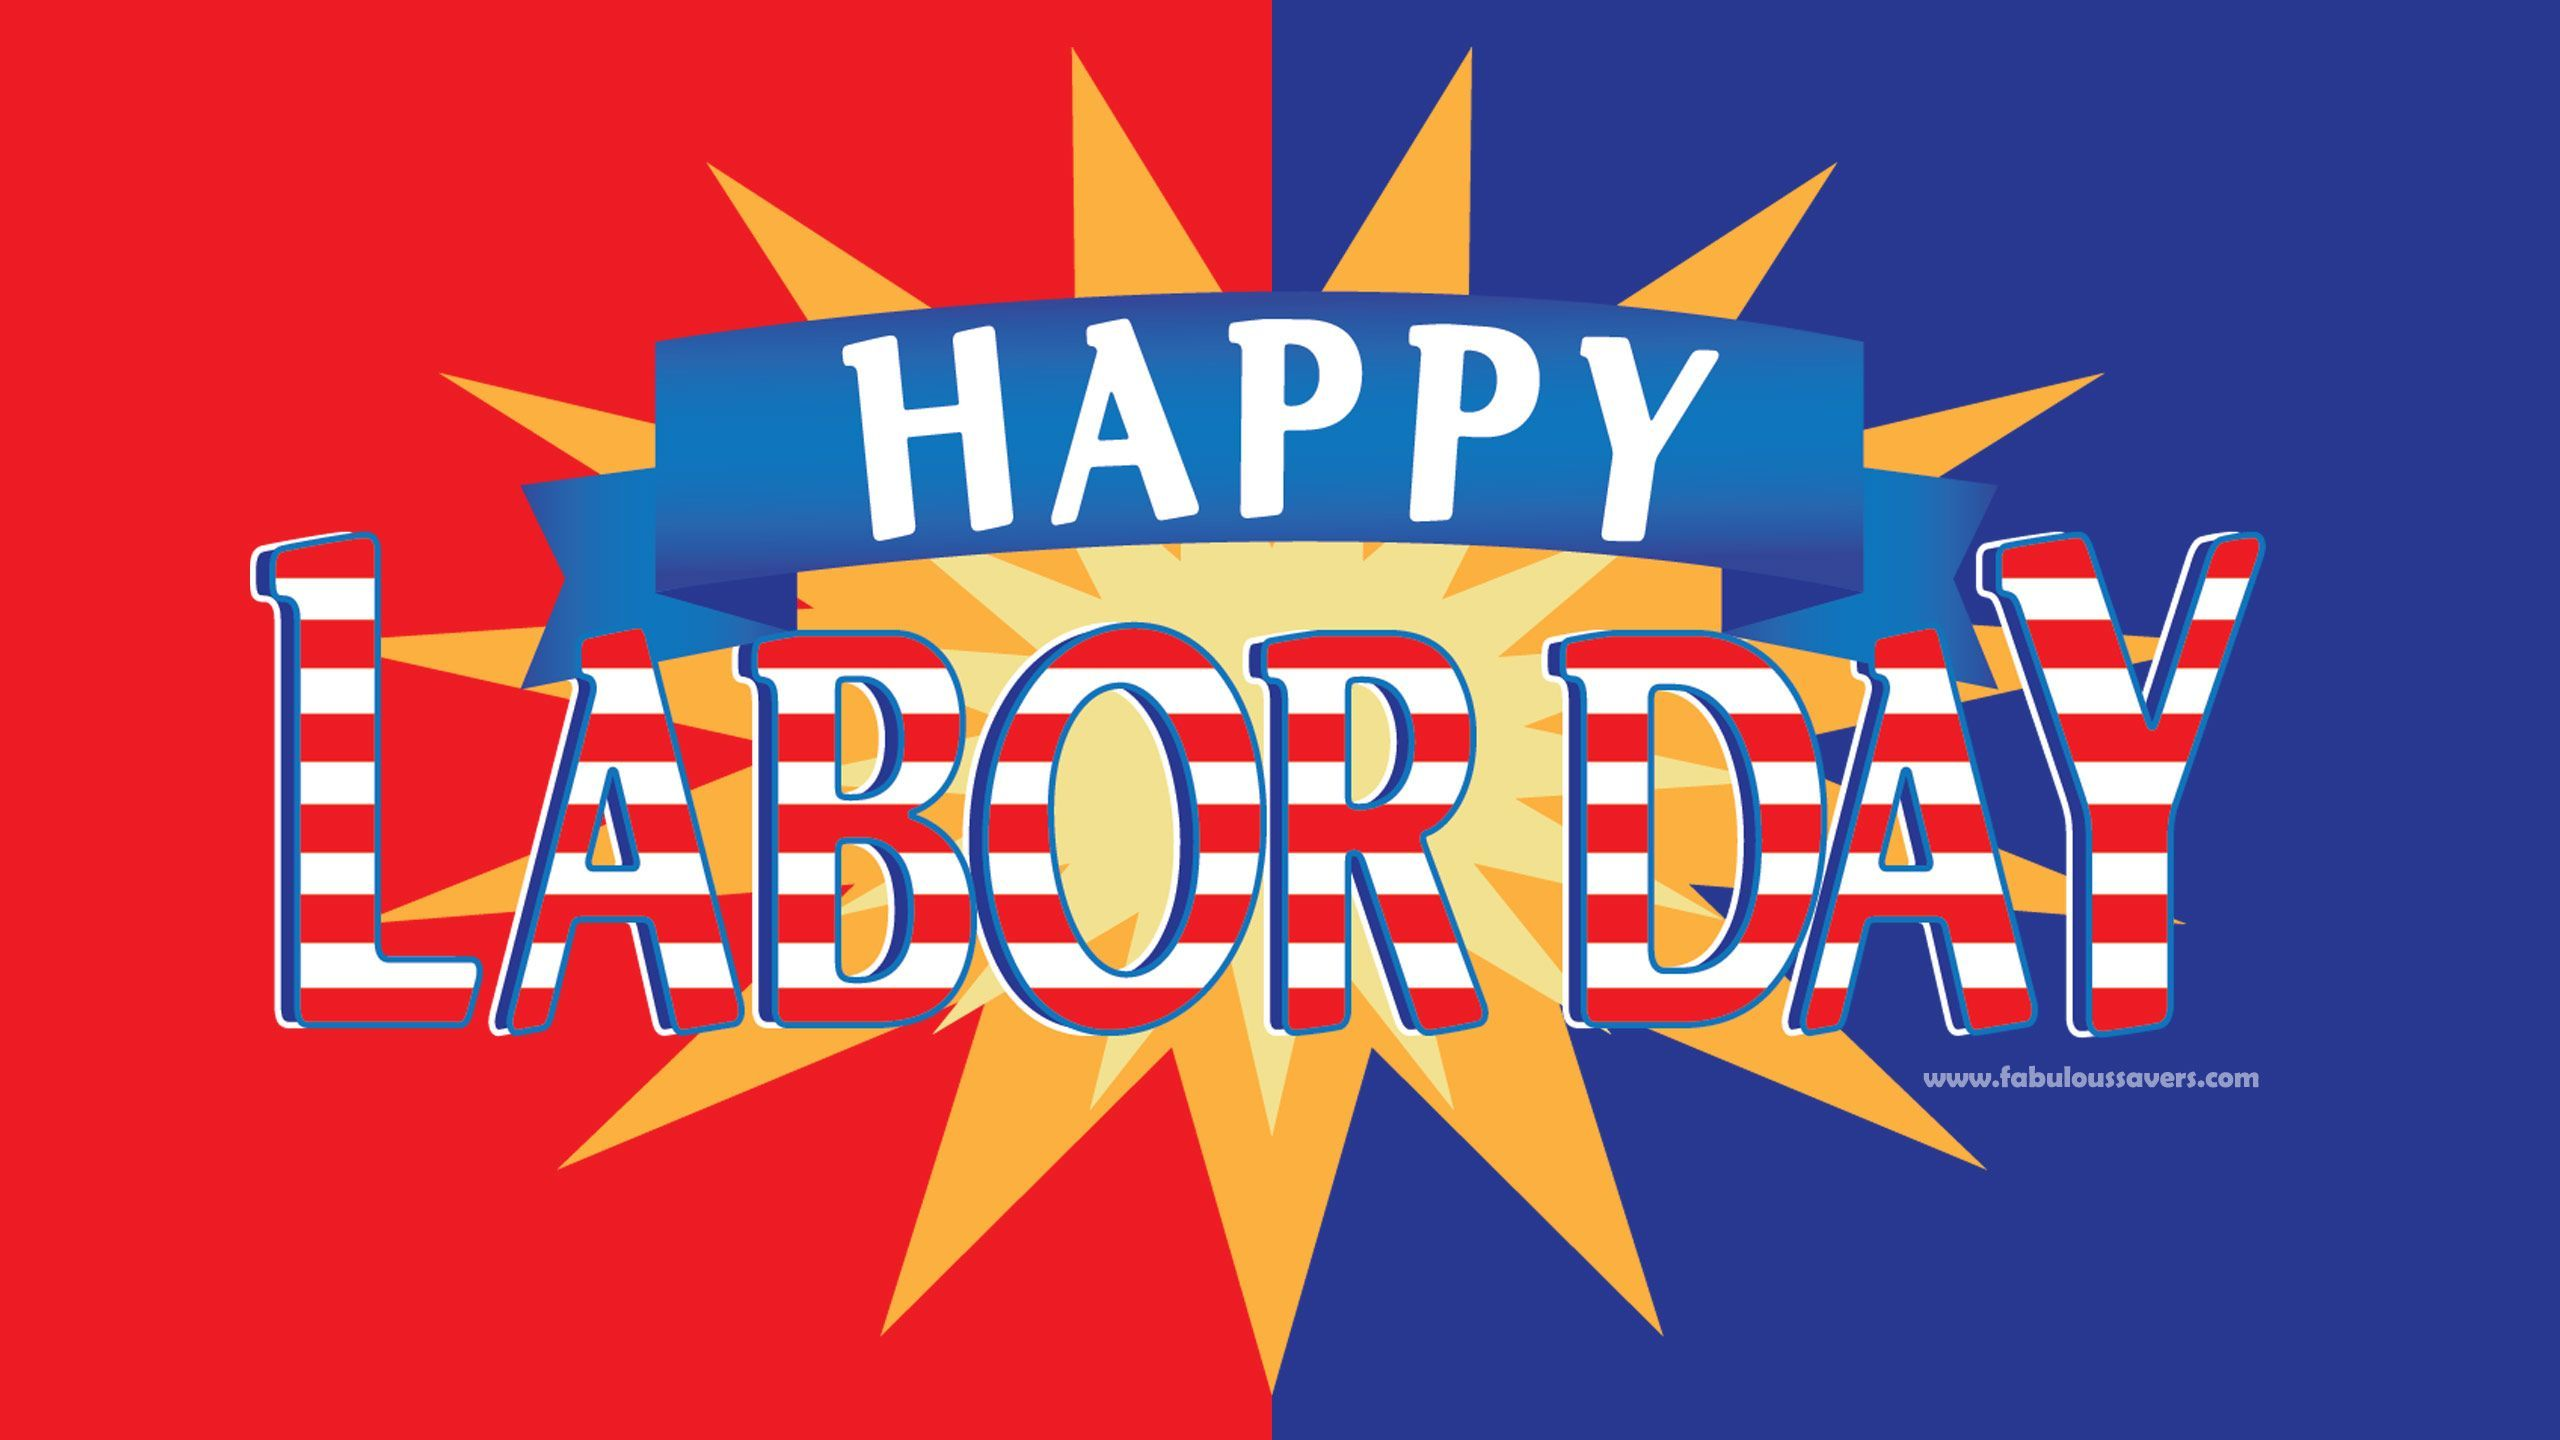 Happy Labor Day Quotes and Images to share with everyone around 2560×1440 Labor Day Pictures Wallpapers (30 Wallpapers) | Adorable Wallpapers #labordayquotes Happy Labor Day Quotes and Images to share with everyone around 2560×1440 Labor Day Pictures Wallpapers (30 Wallpapers) | Adorable Wallpapers #labordayquotes